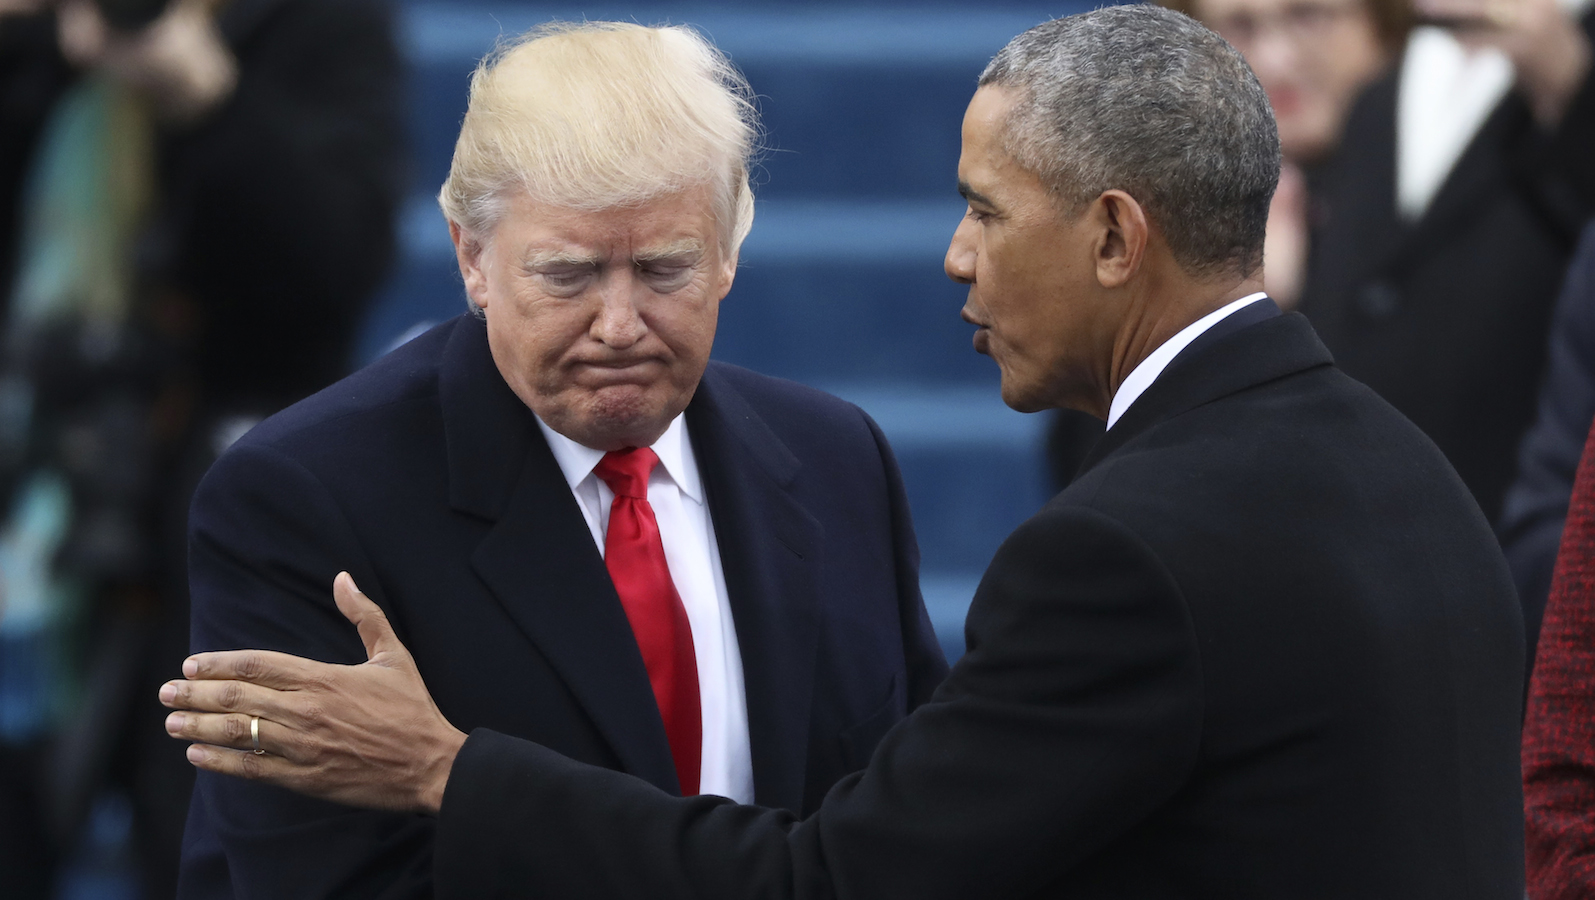 President Barack Obama (R) greets President elect Donald Trump at inauguration ceremonies swearing in Donald Trump as the 45th president of the United States on the West front of the U.S. Capitol in Washington, U.S., January 20, 2017. REUTERS/Carlos Barria  - RTSWIZD